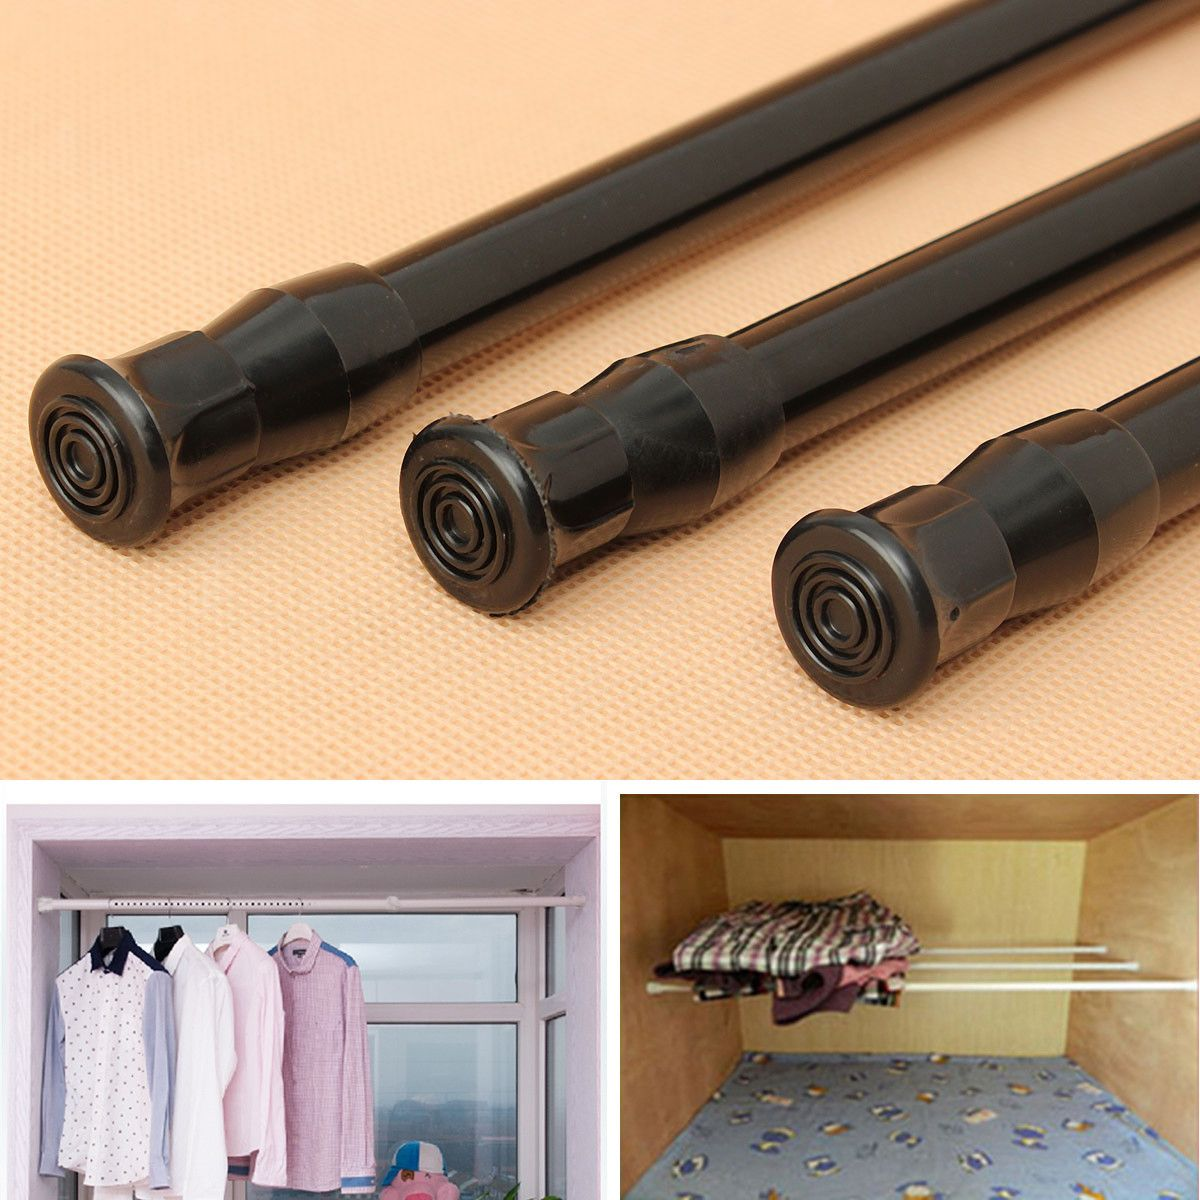 Extendable Adjustable Spring Tension Window Curtain Rod